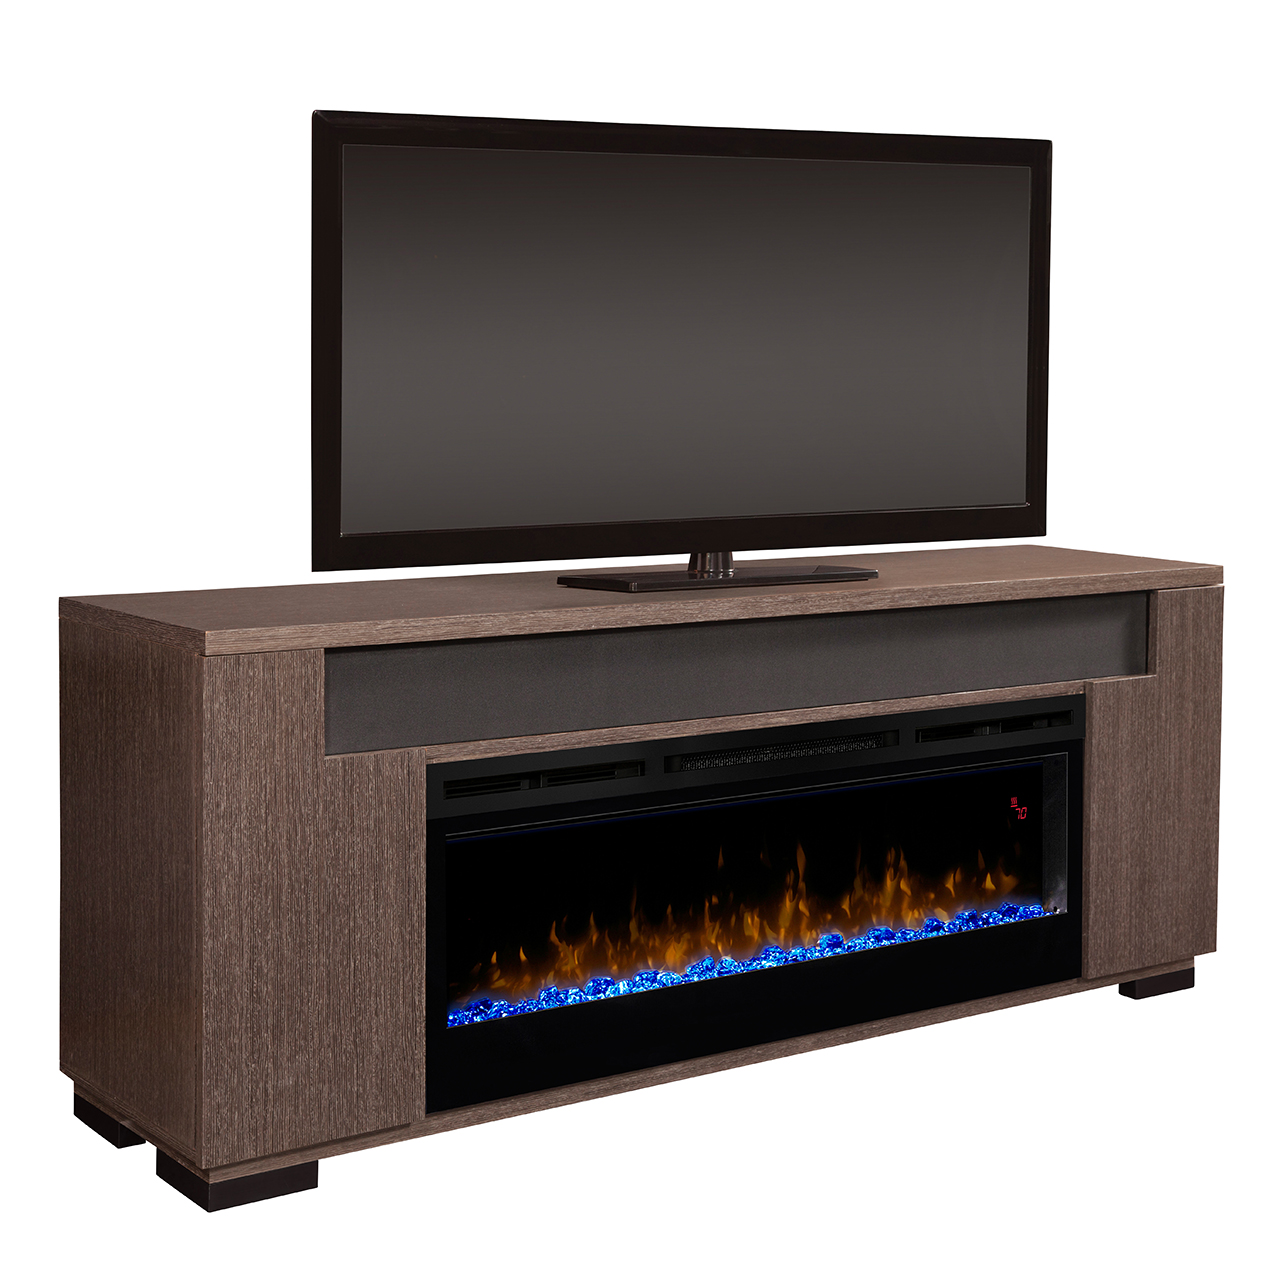 fireplace media belmont log inch classicflame oak gas electric guys caramel console